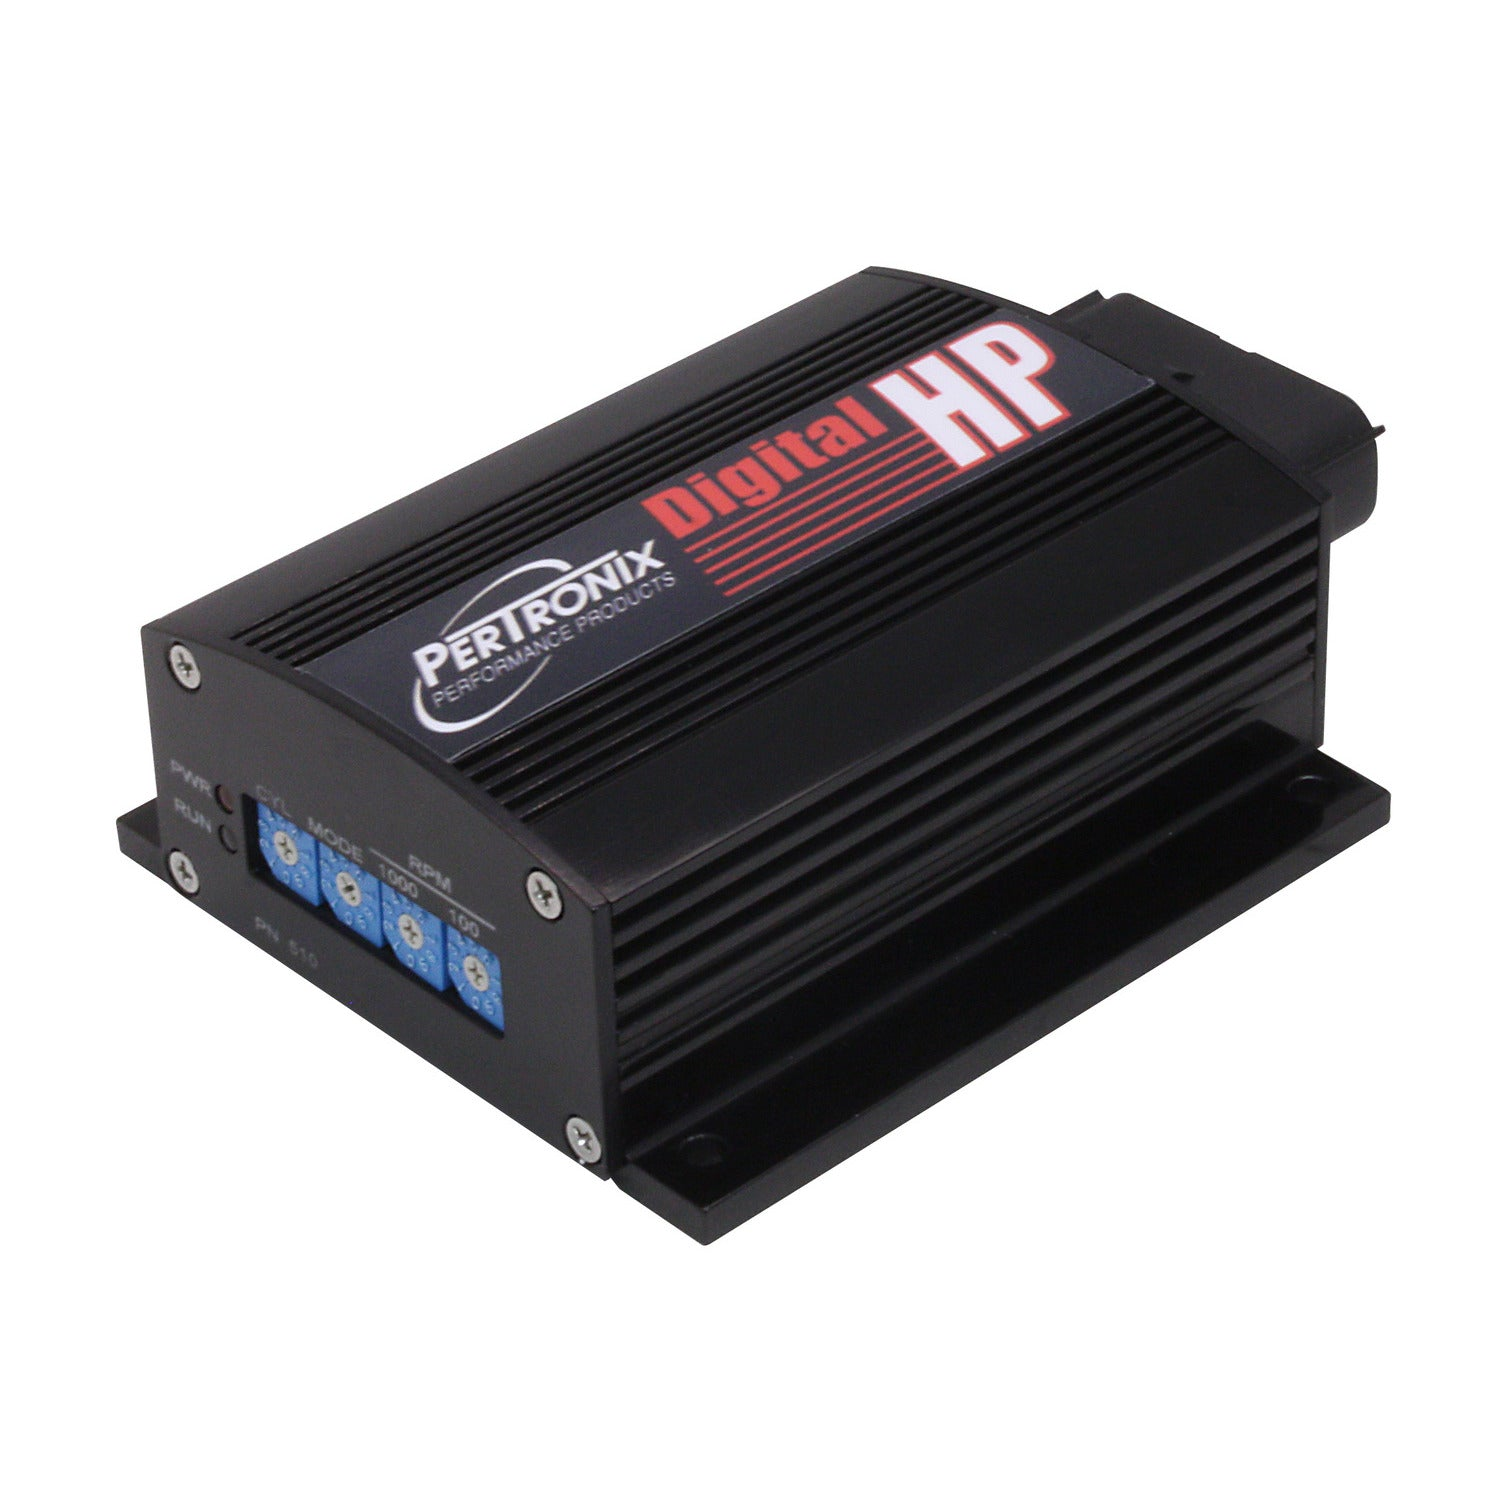 Digital HP Ignition Box Black Anodized Finish